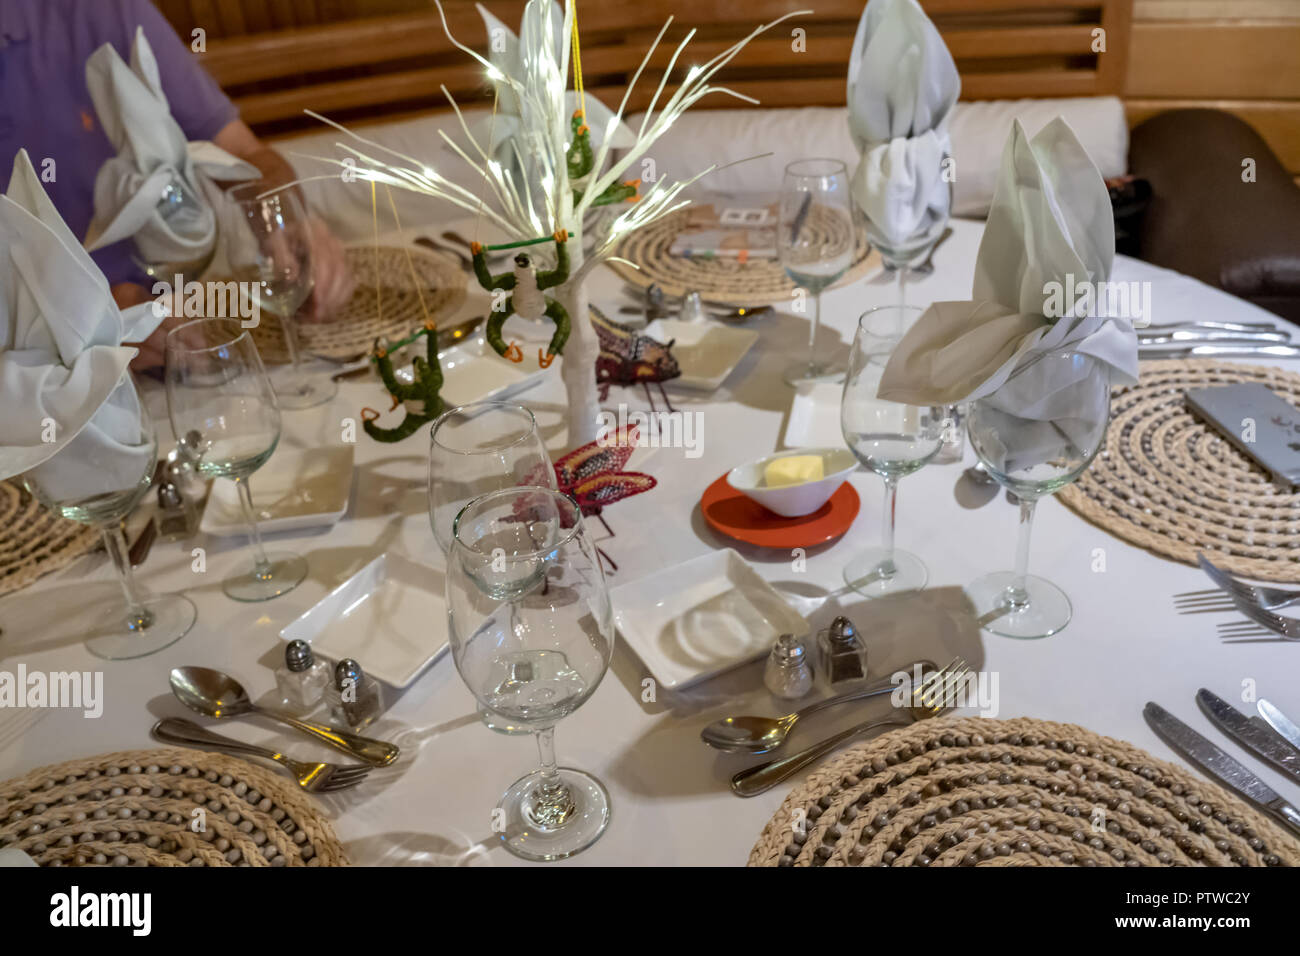 Peru, South America.  Table decorations with handmade sloths and butterflies on a tour boat. - Stock Image